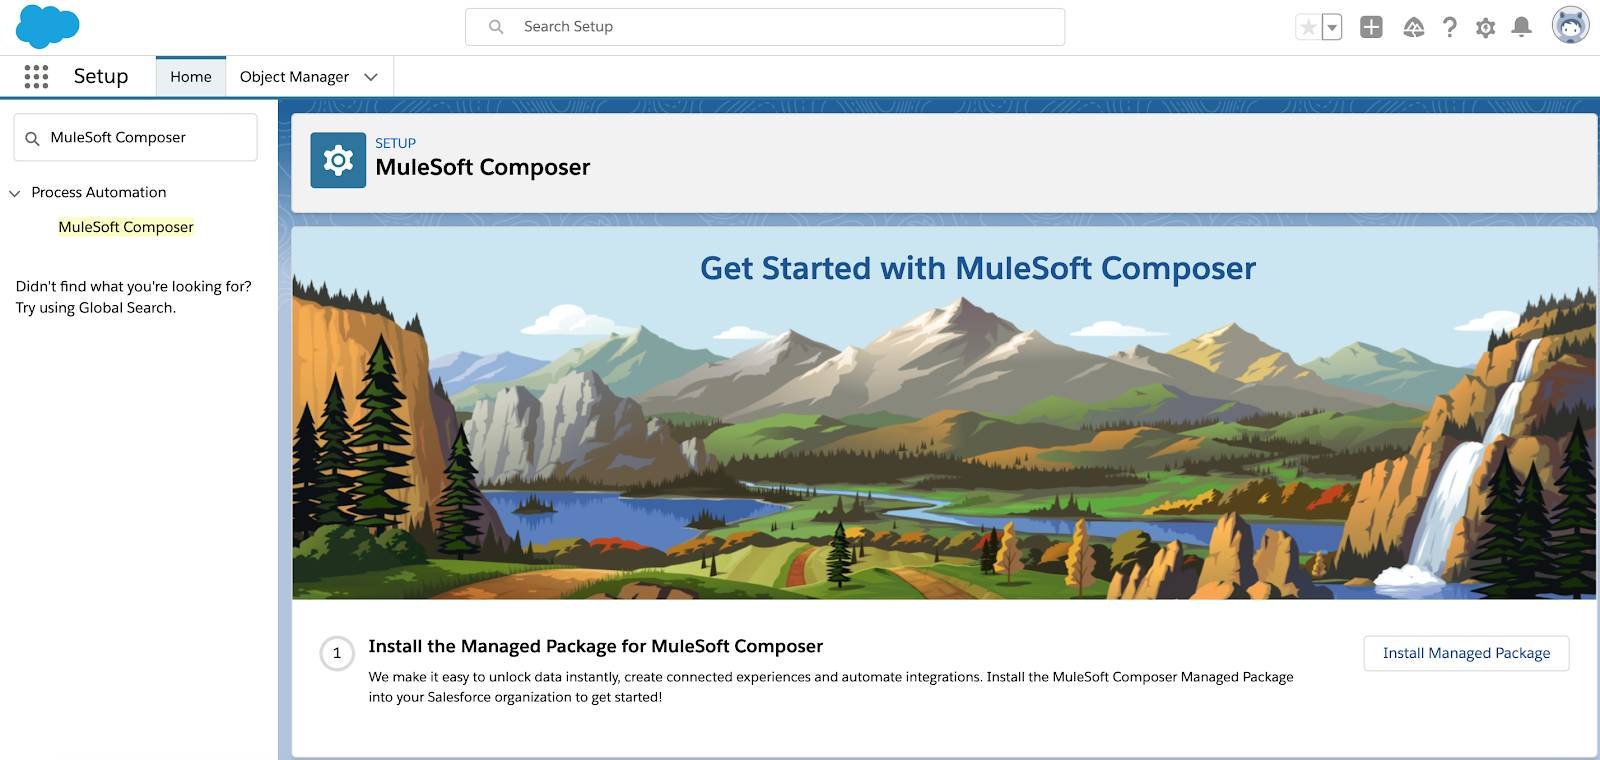 MuleSoft Composer Setup page with mountains, river, and waterfall